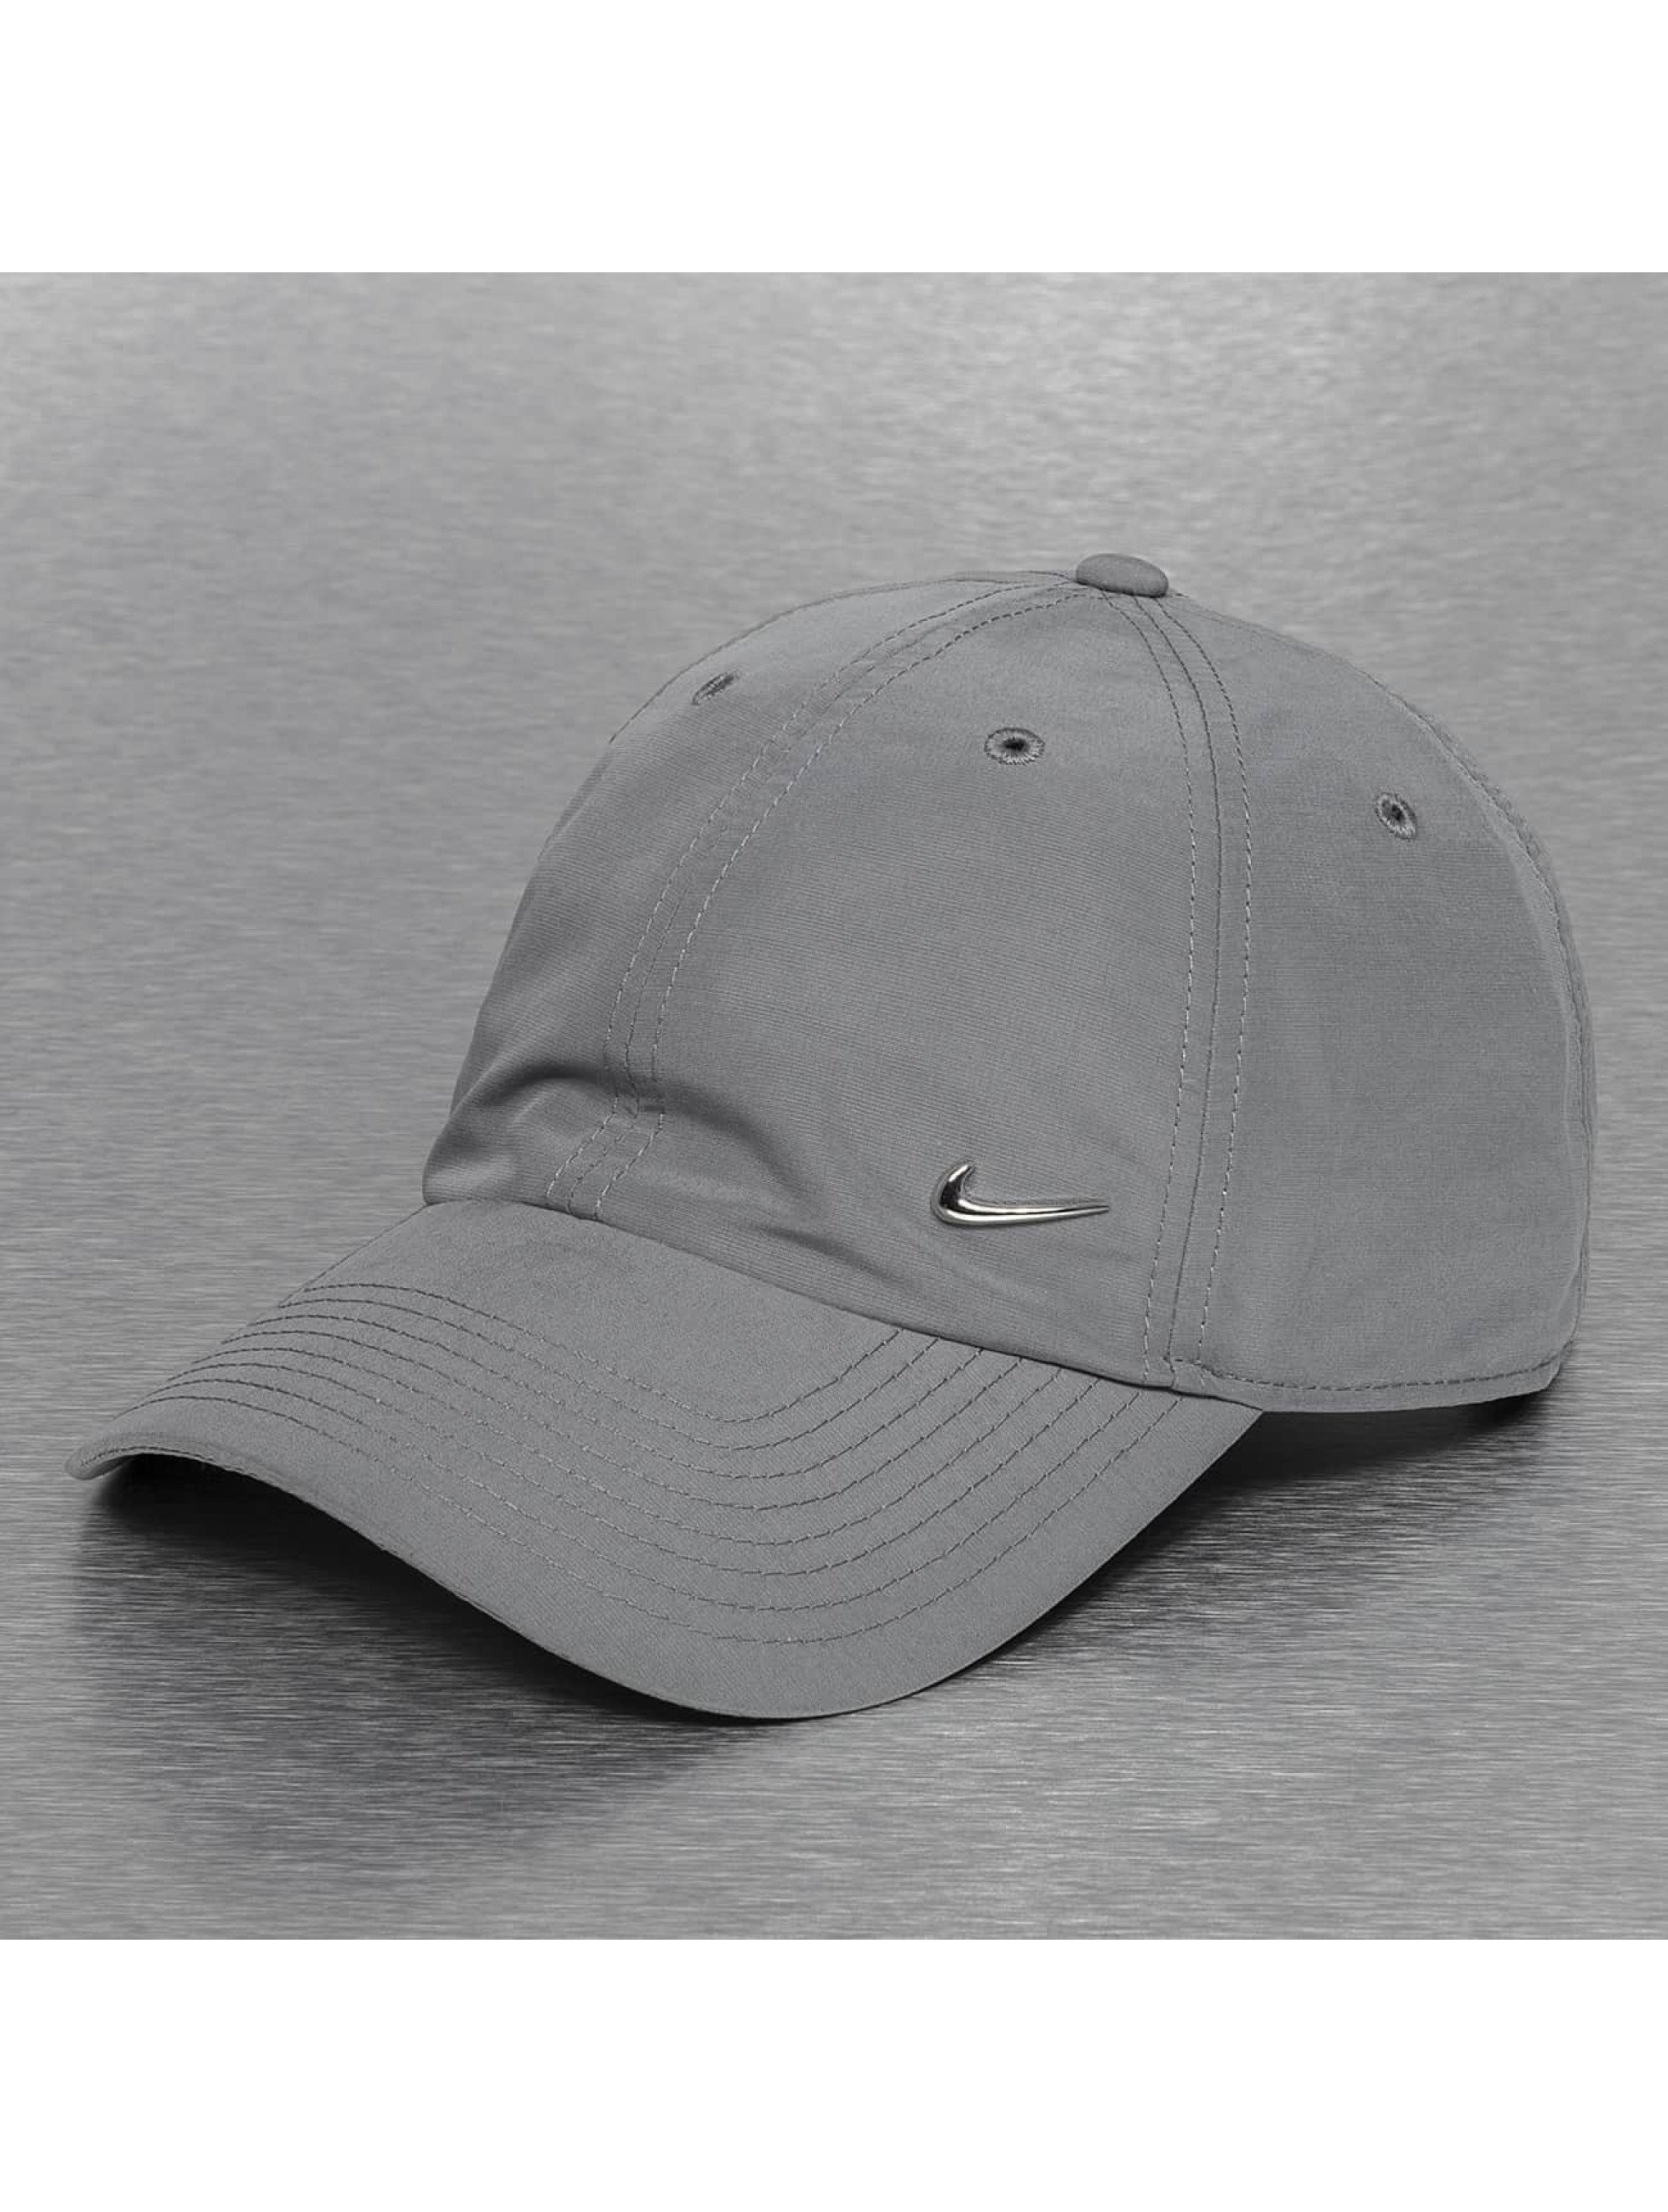 Grise Casquette Casquette Nike Nike Metal Swoosh YDW2eEH9I